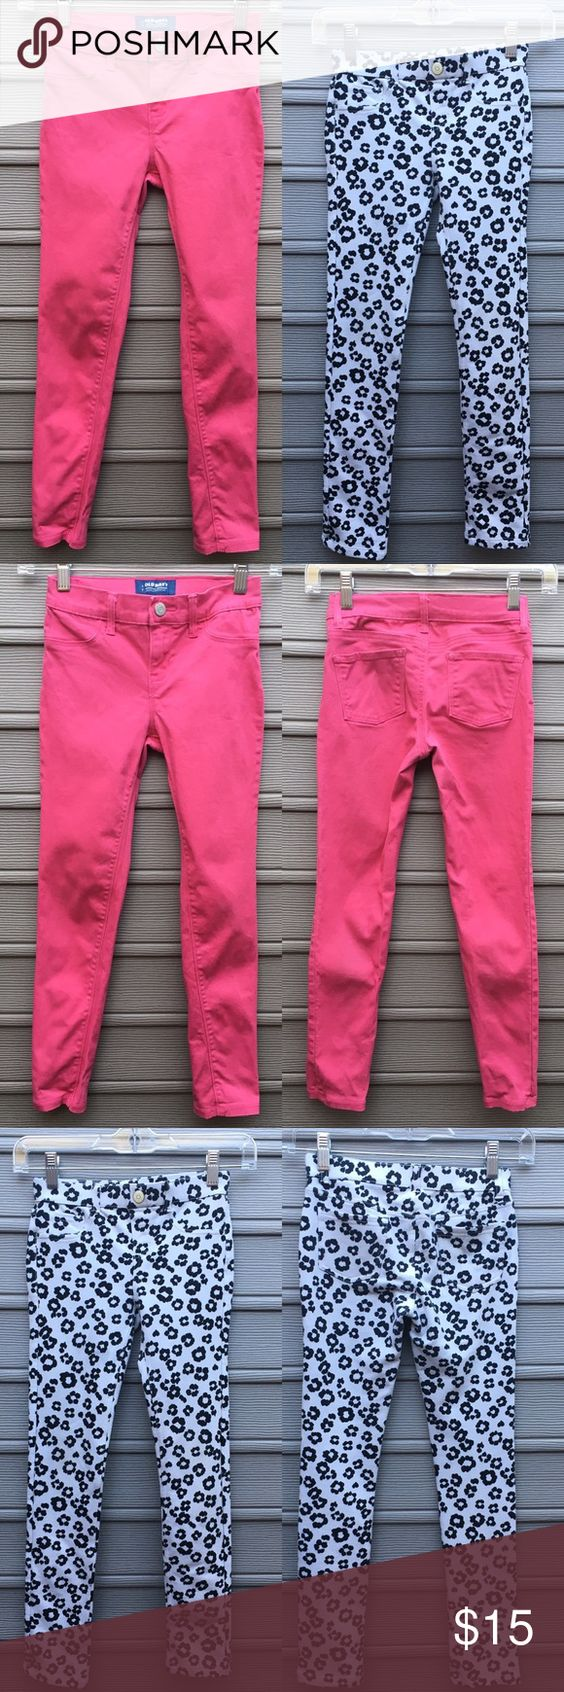 Girls Skinny Jean Bundle 💖 Girls Skinny Jean Bundle 💖. First pair are pink cotton Denim from Old Navy. Second are Jeggings from Gymboree. As is. Both pairs in excellent condition. Both have adjustable bands in inside of waist. Gymboree Bottoms